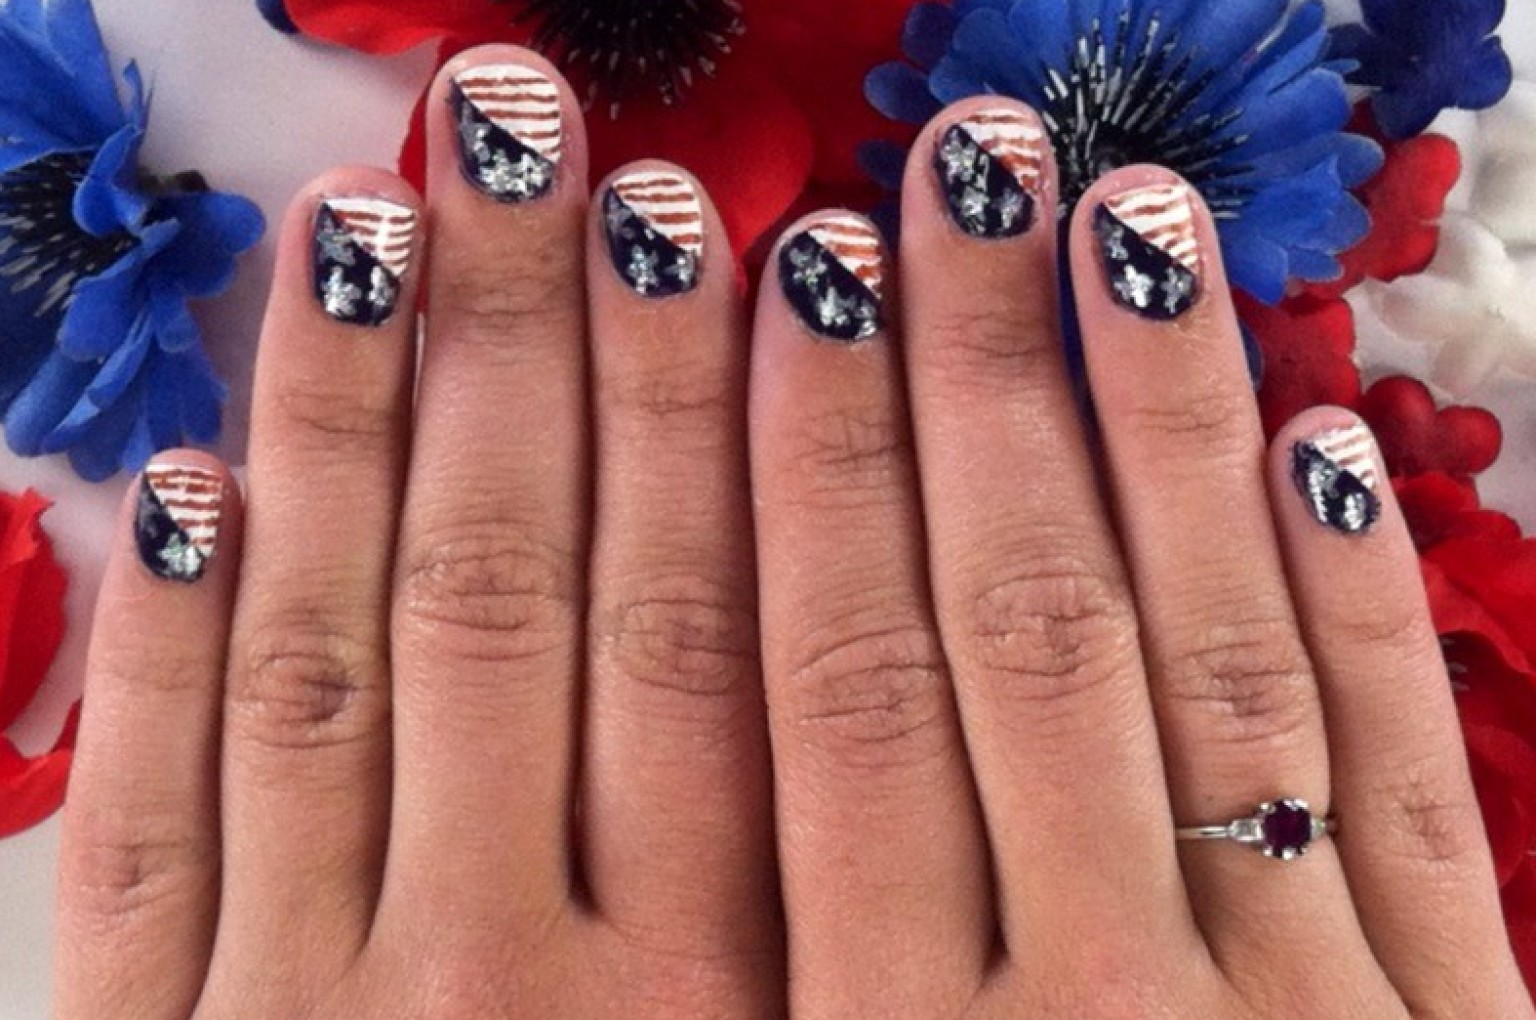 Fourth of july nail art that puts the stars in the spangled fourth of july nail art that puts the stars in the spangled banner video huffpost prinsesfo Choice Image